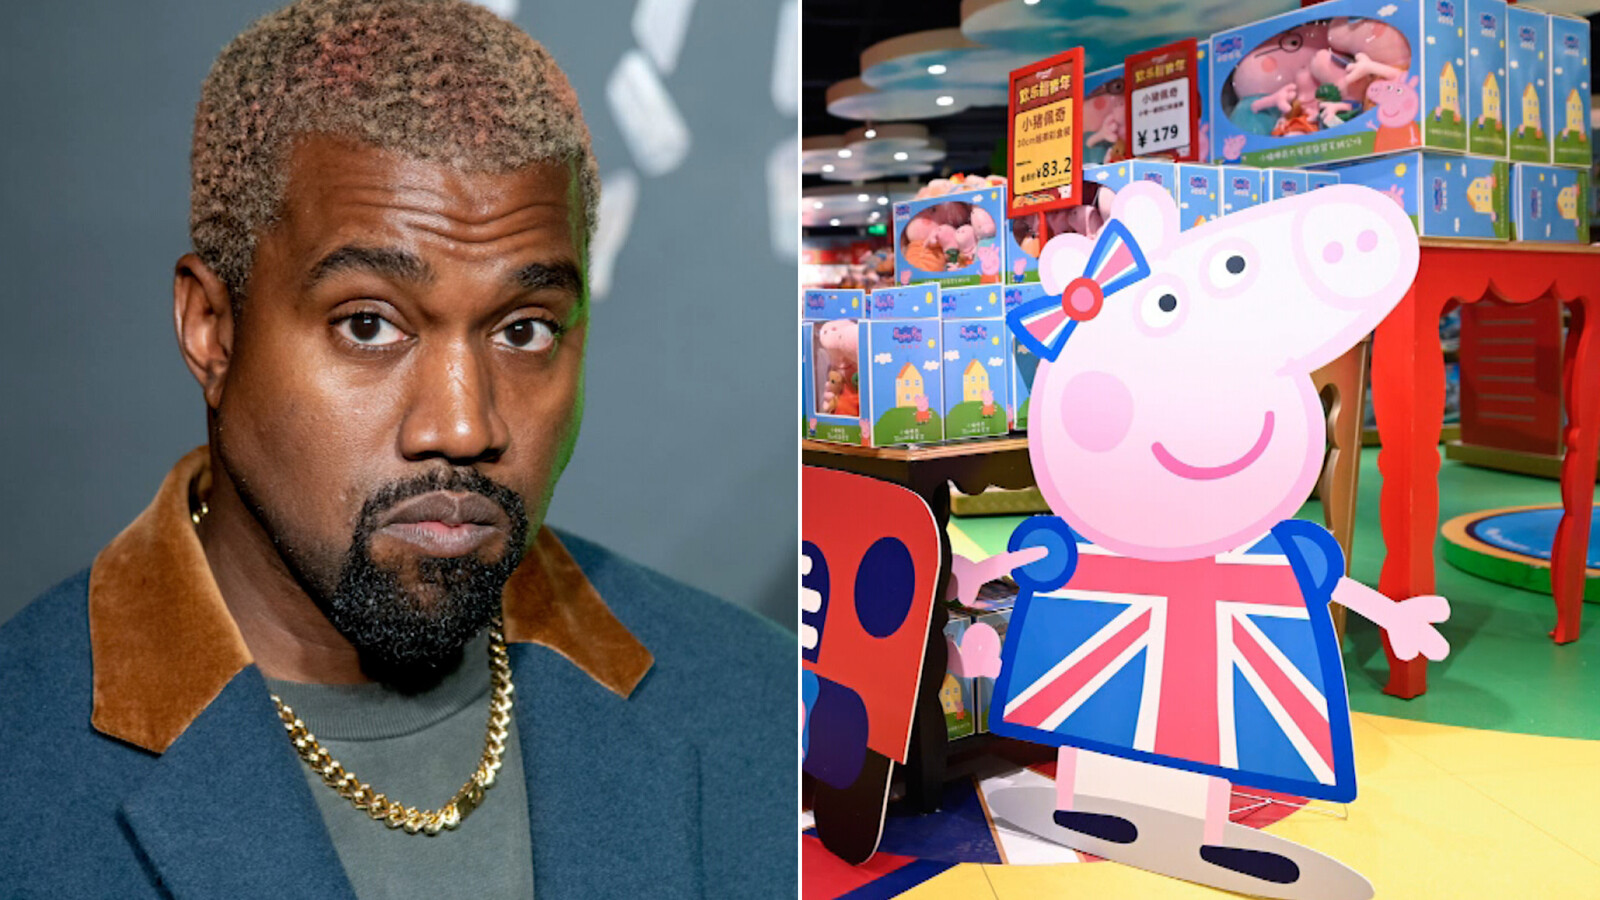 Peppa Pig appears to have trolled Kanye West